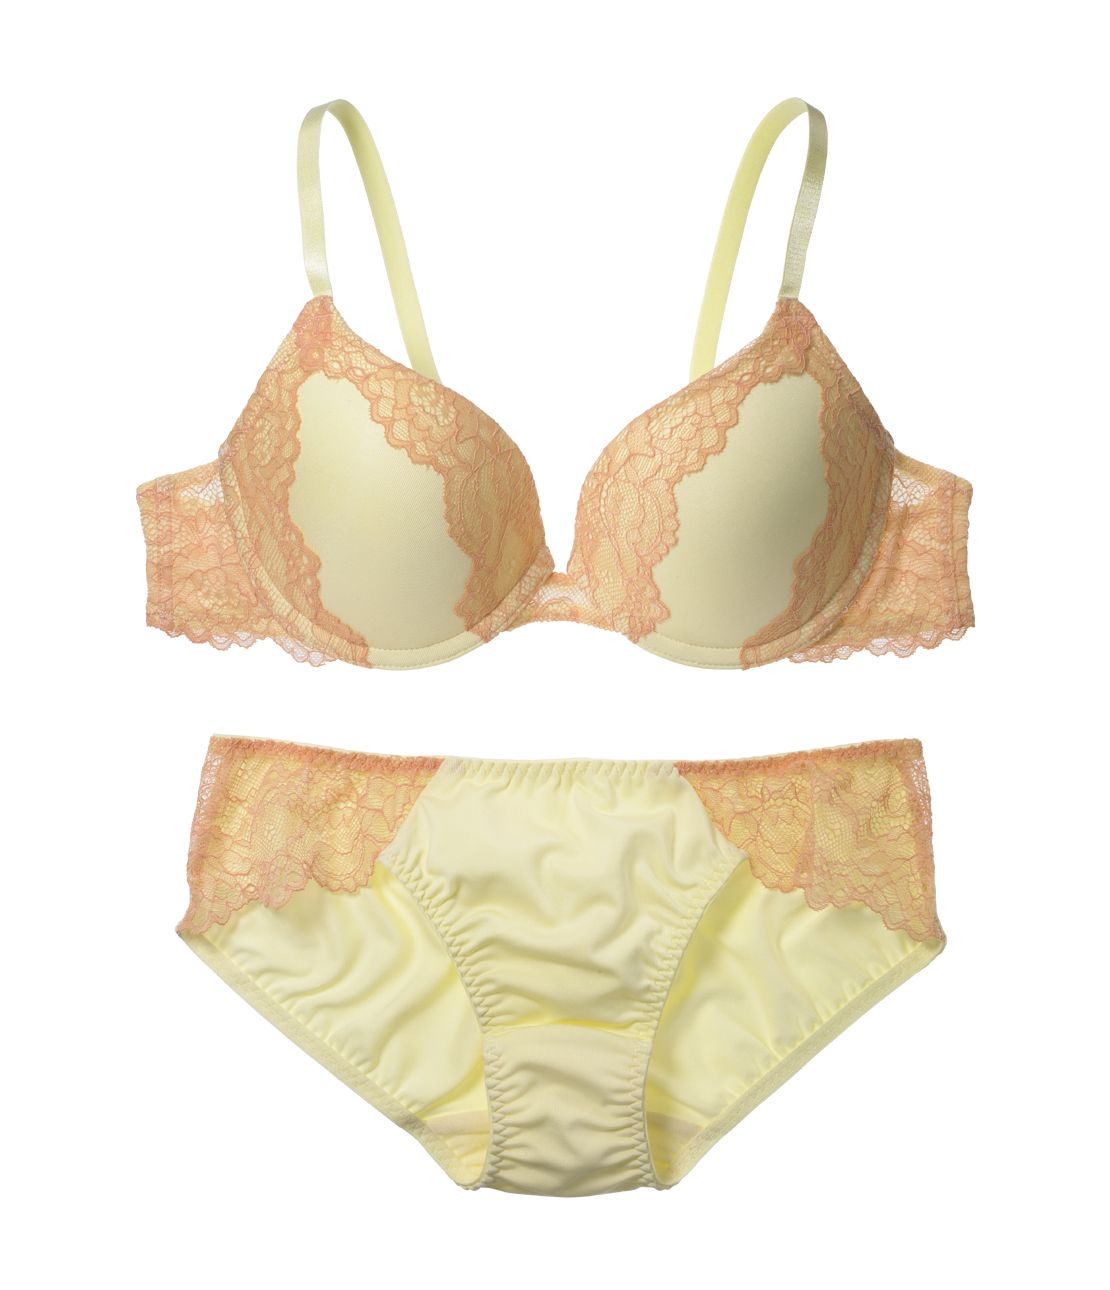 YM simple cutlets bra set